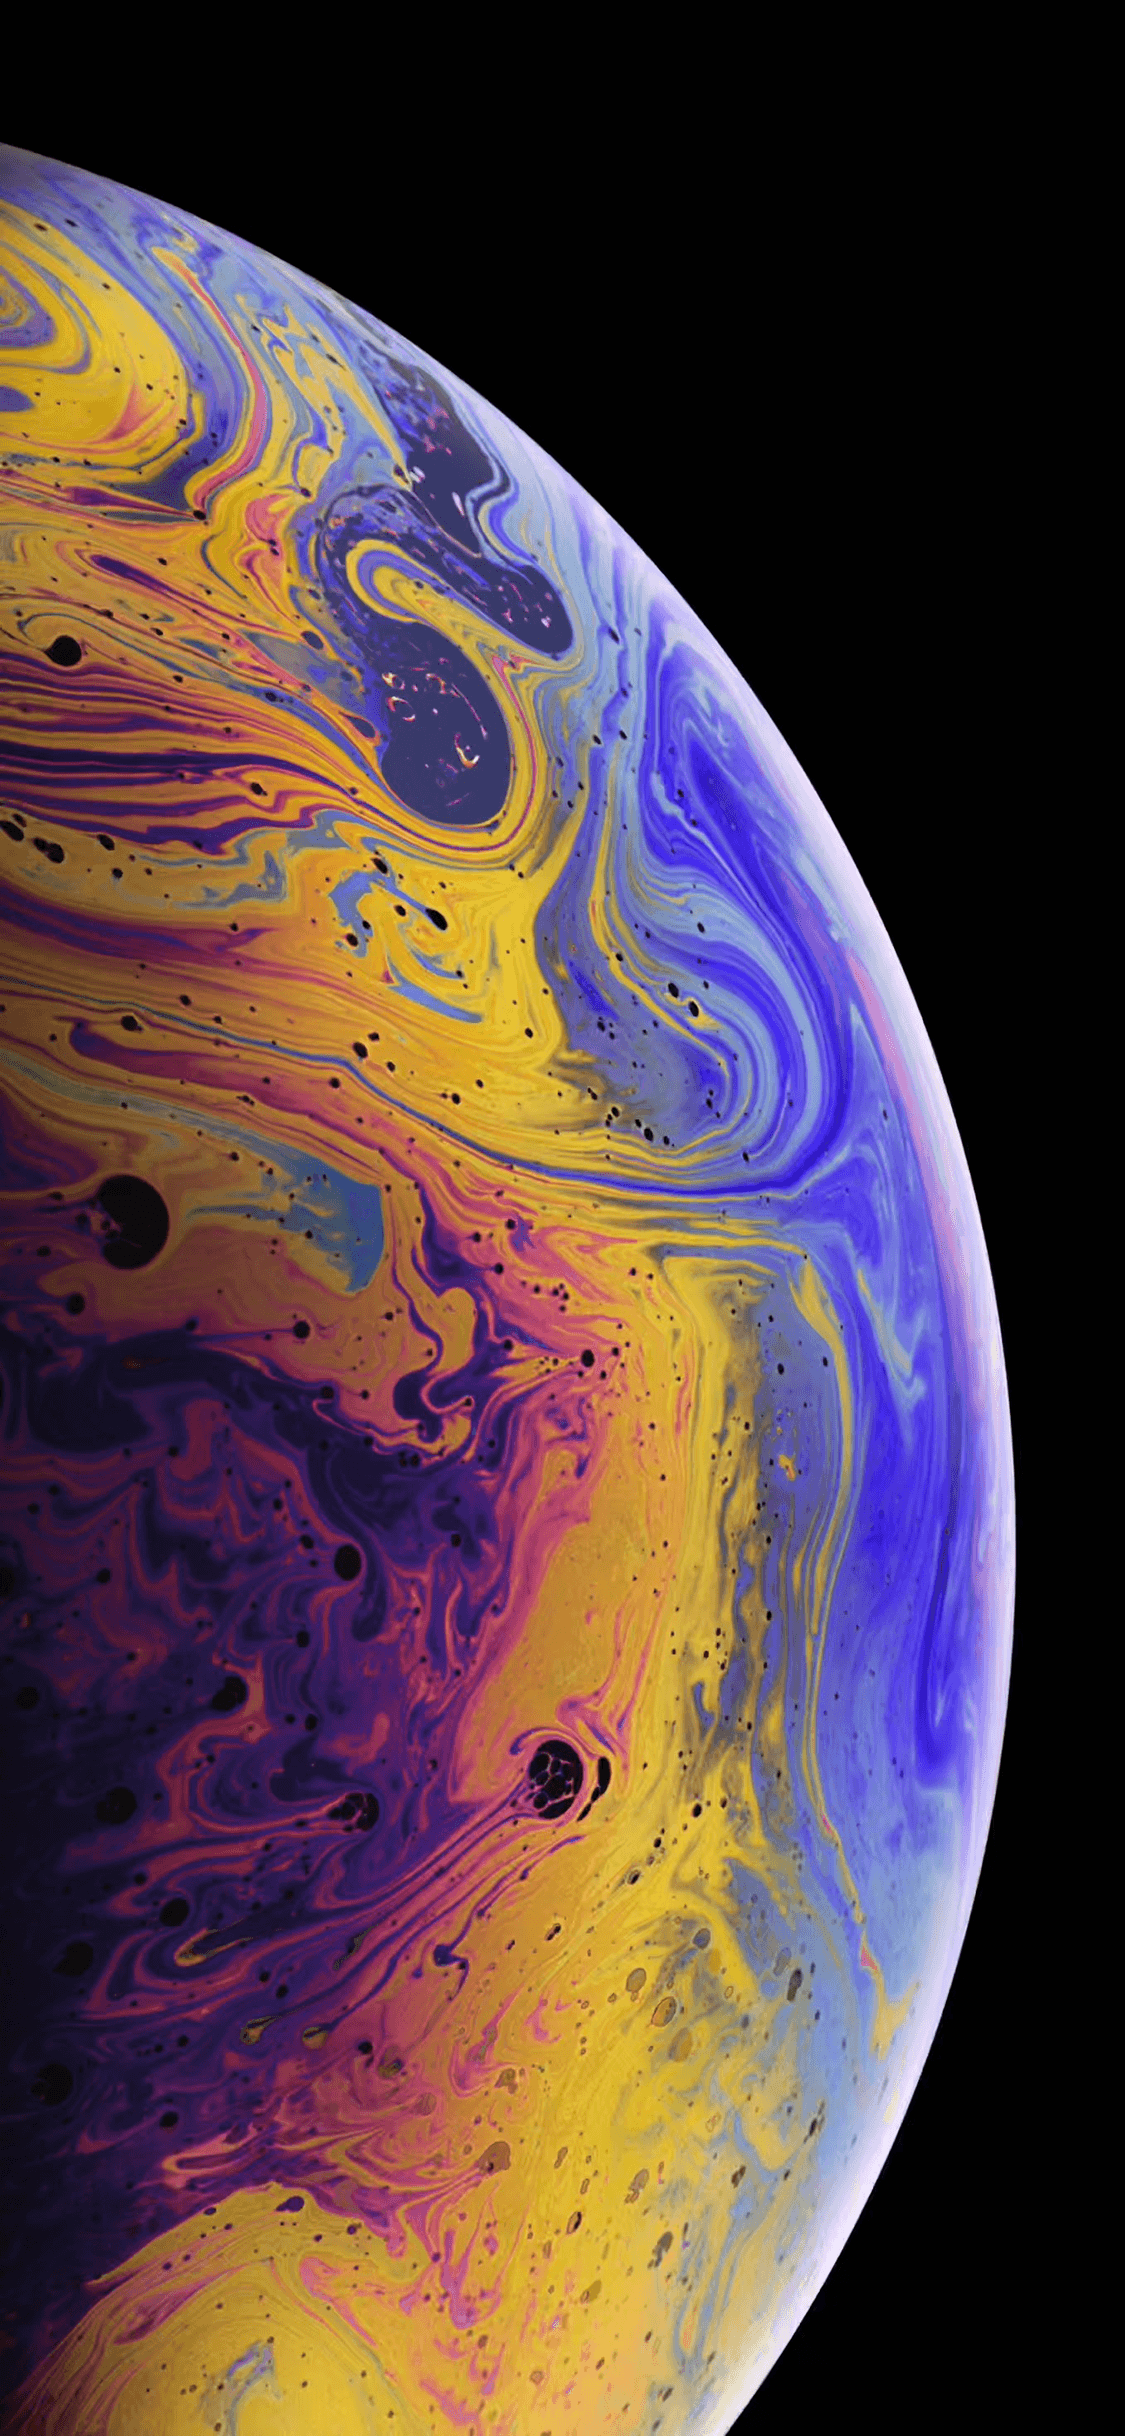 iPhone XS Max Wallpapers , Top Free iPhone XS Max